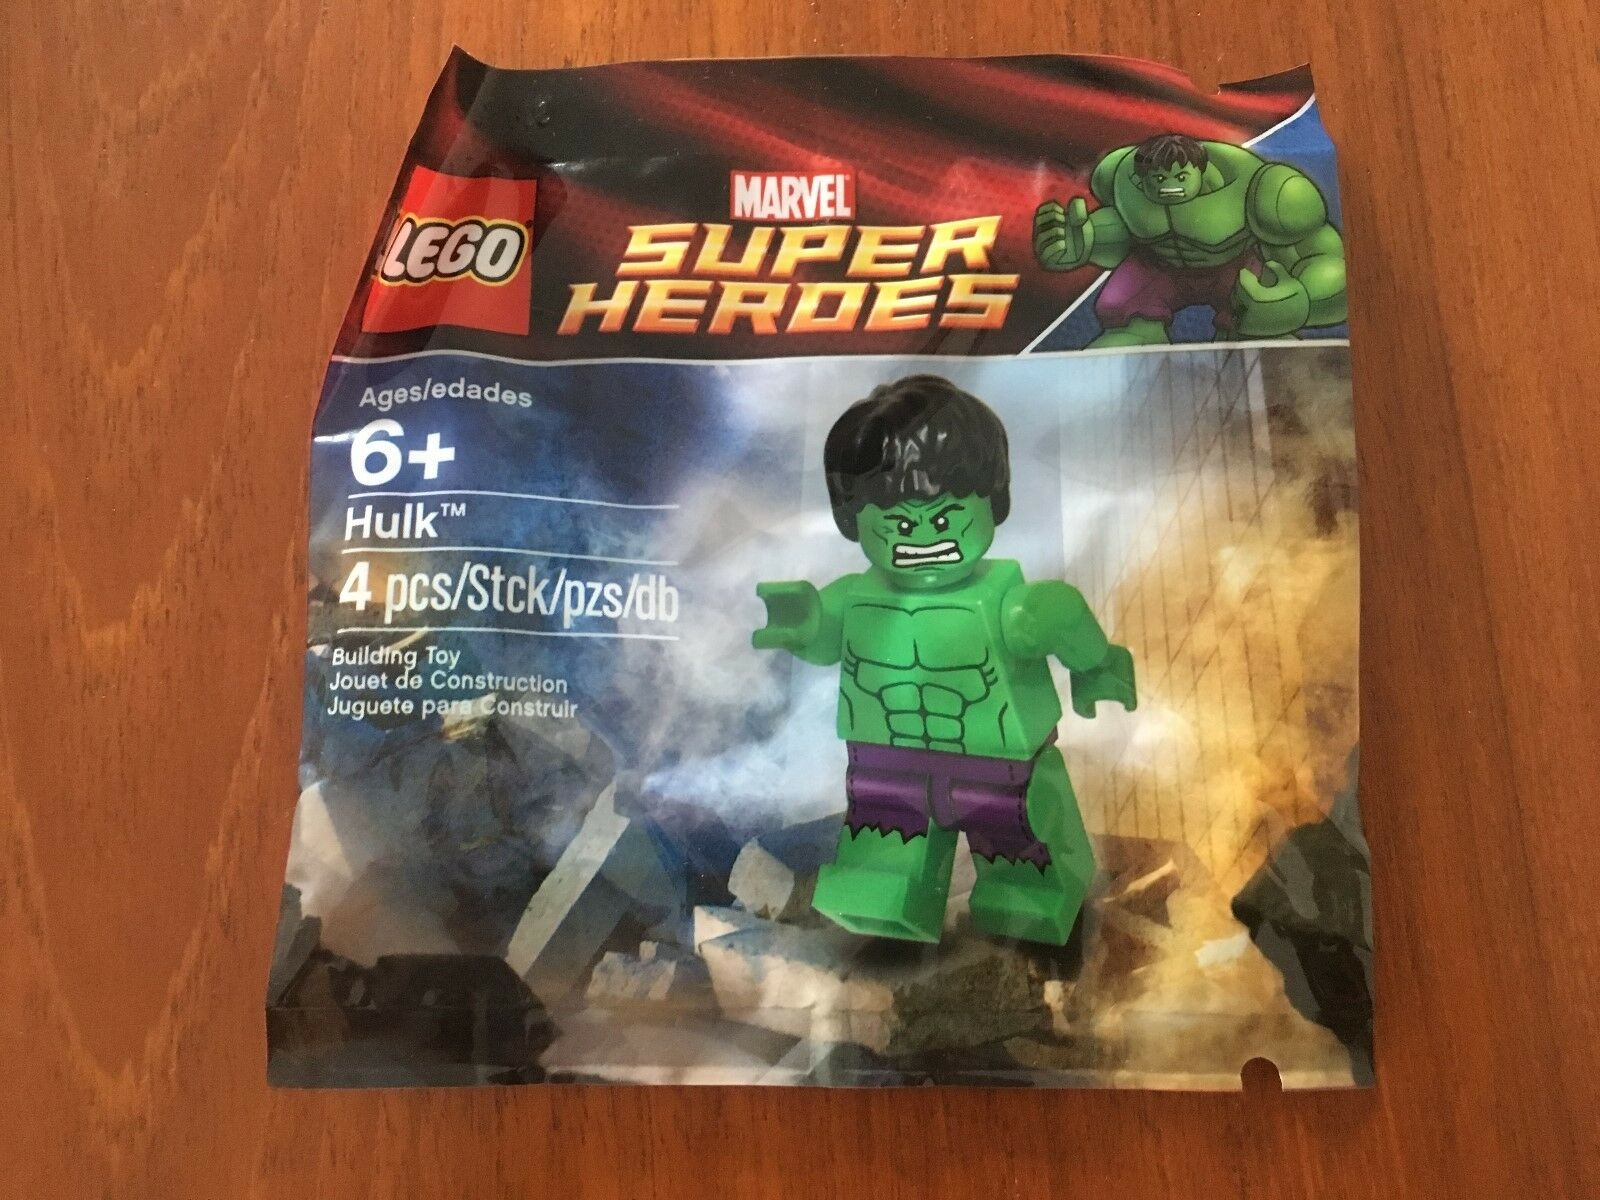 SEALED  LEGO Marvel Super Heroes - Hulk Avengers Minifigure Polybag 5000022